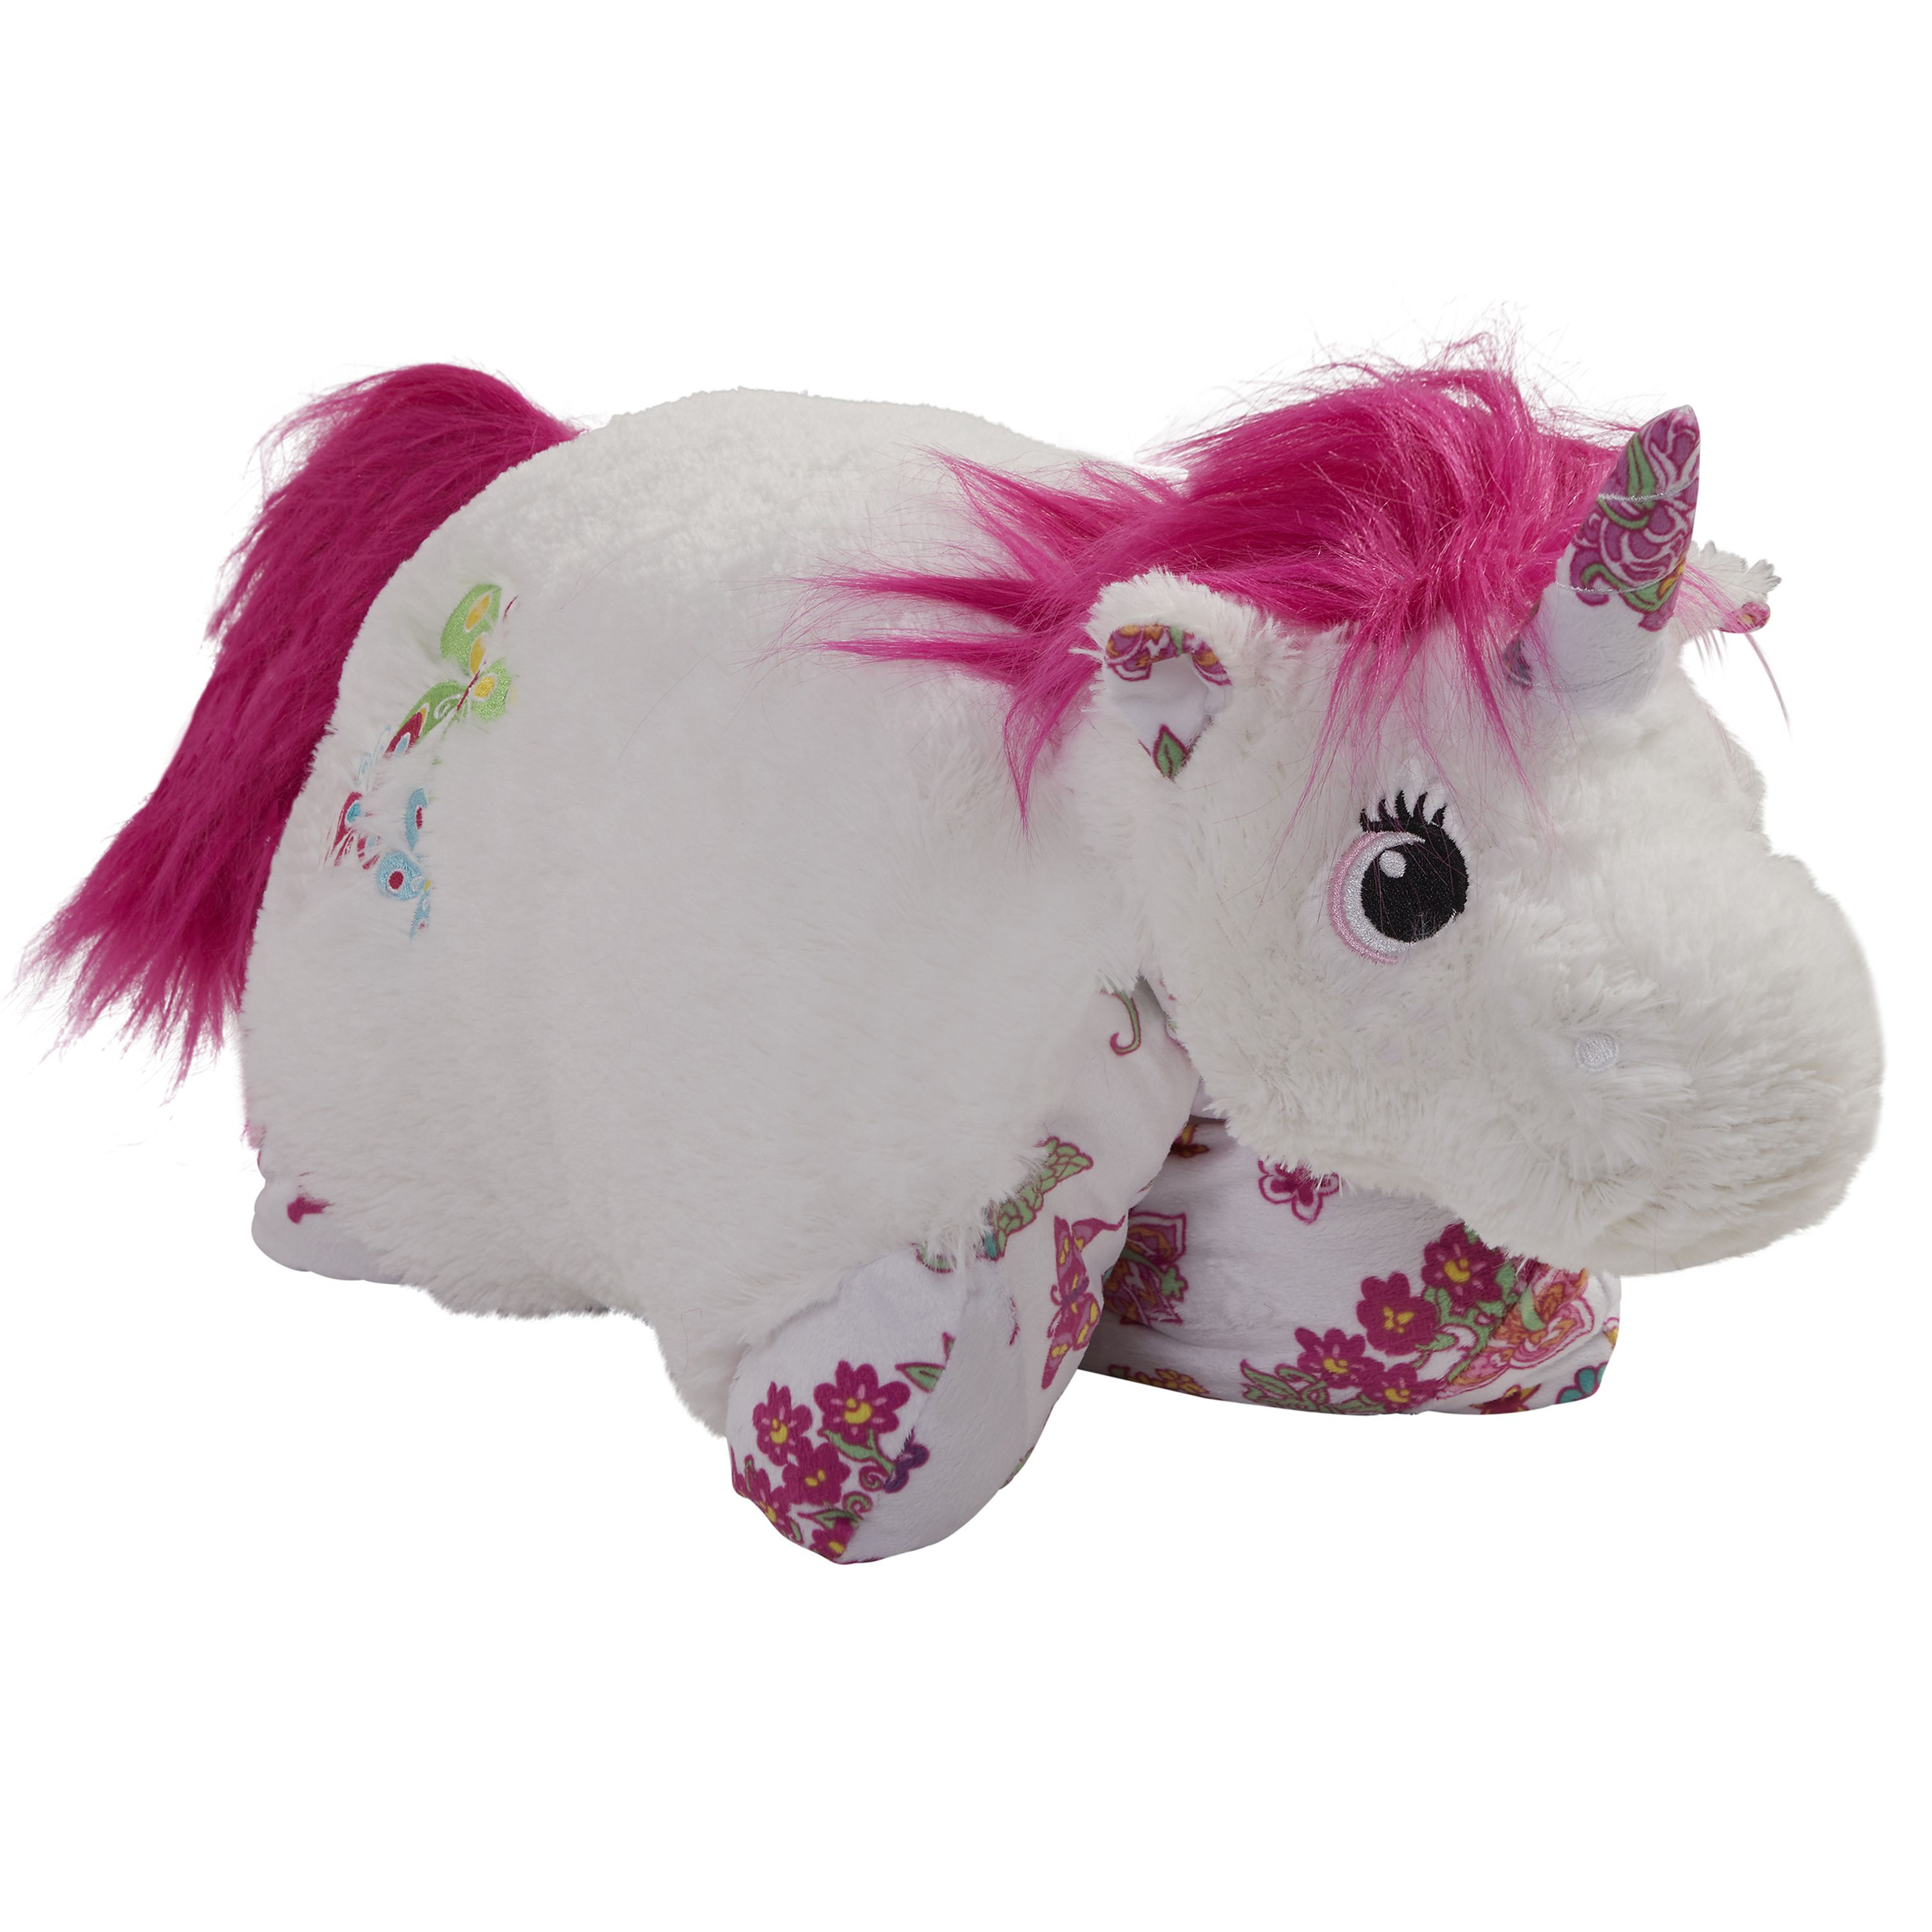 Colorful White Unicorn Pillow Pet With Images Unicorn Pillow